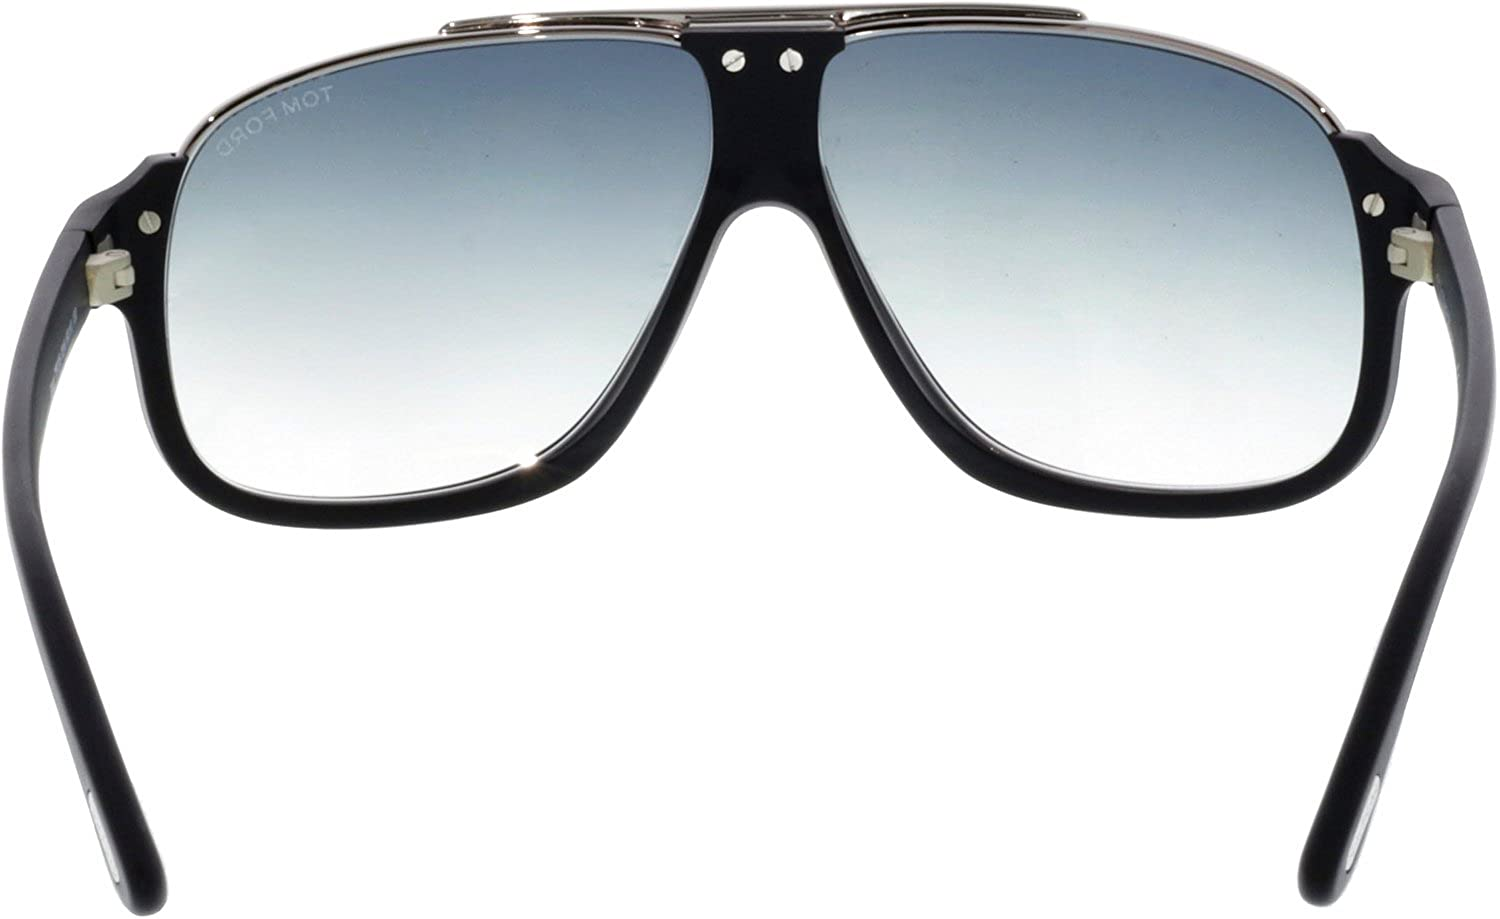 706063d2fe910 Amazon.com  Tom Ford Tf 335 Eliott Matte Black Silver Frame Gray Lens 60Mm  Tom  Ford  Clothing